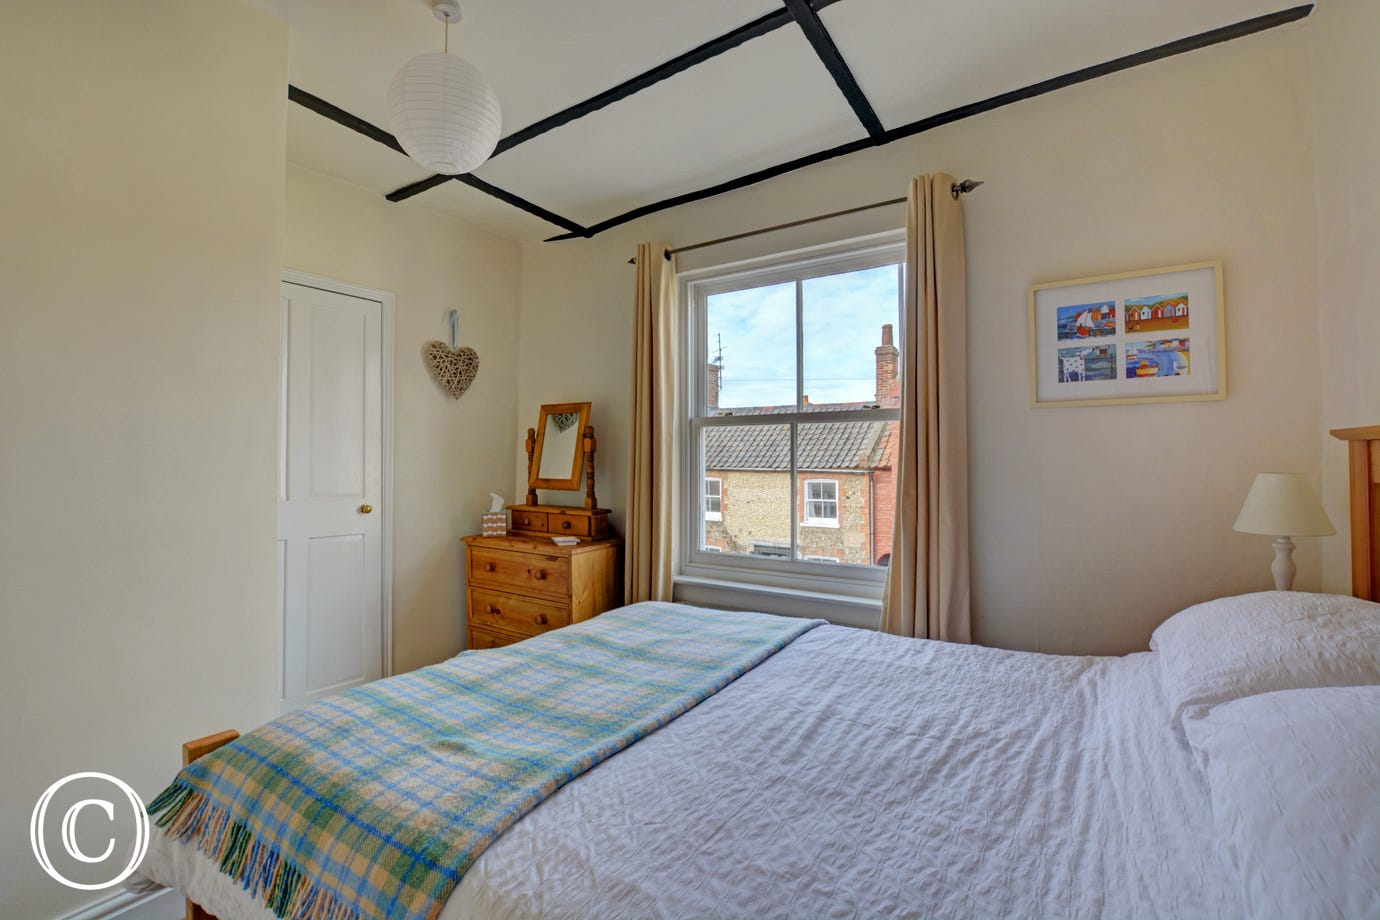 Alternative photograph of double bedroom on first floor.